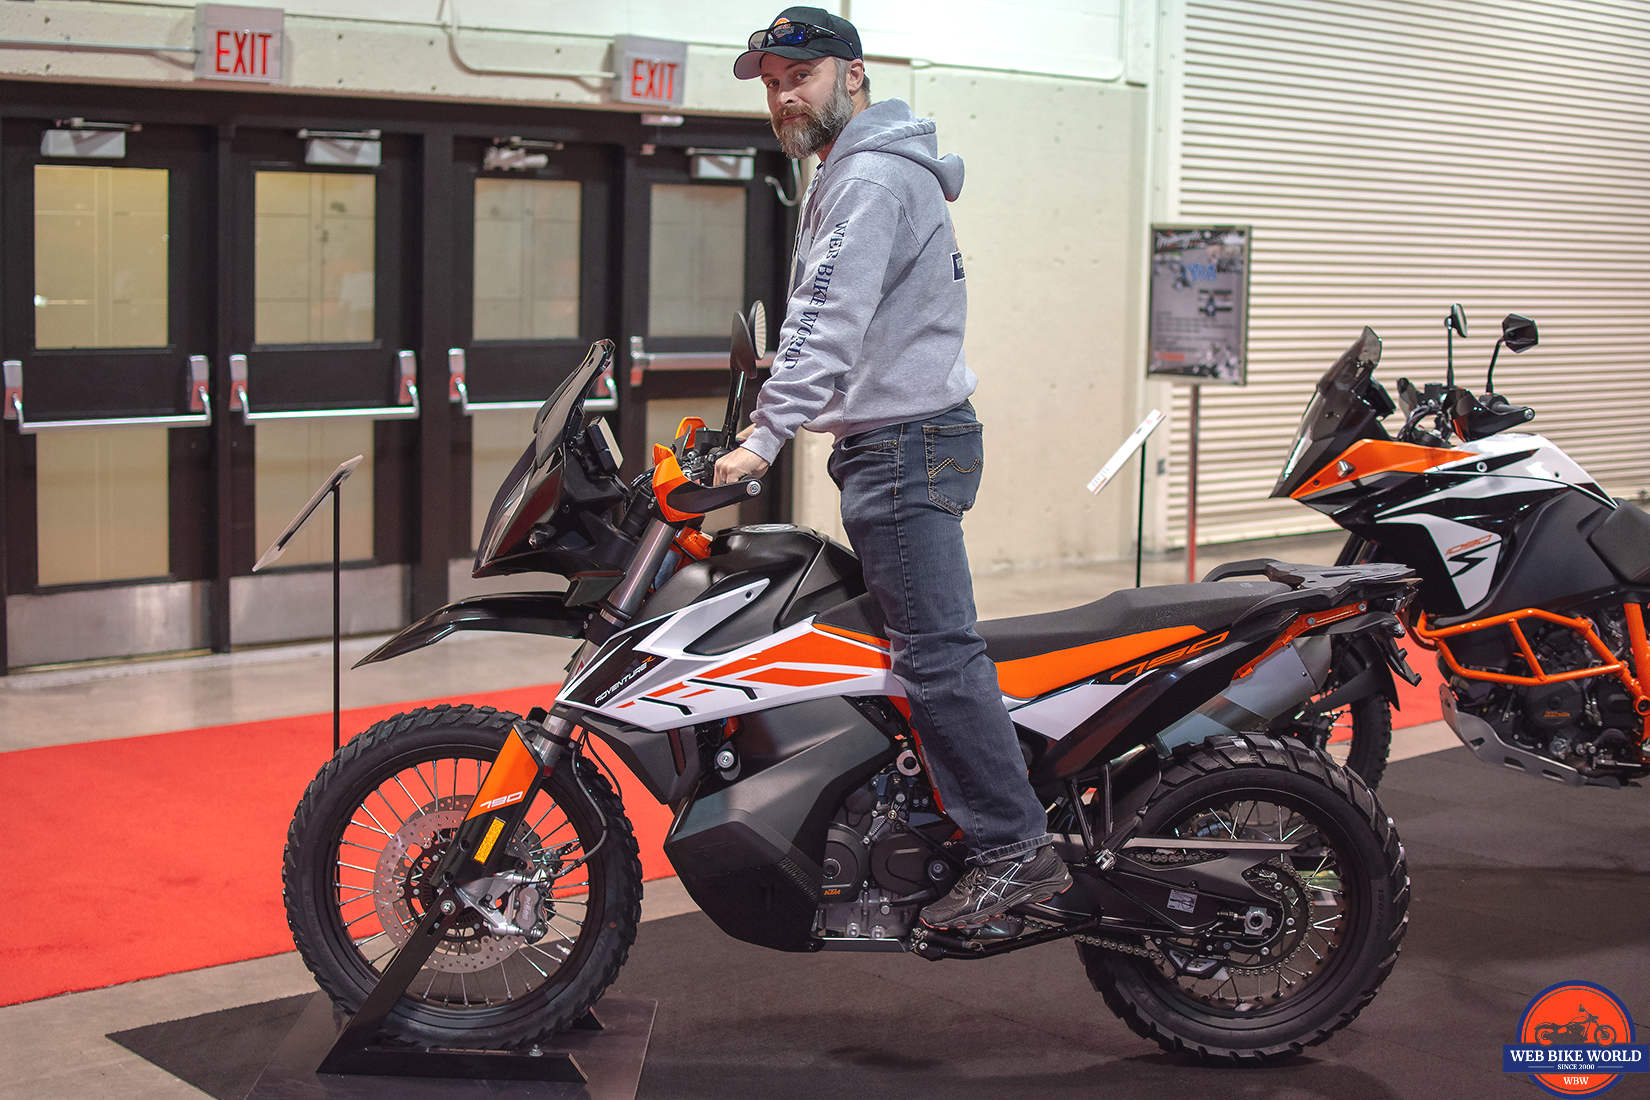 WBW Motorcycle Preview: 2019 KTM 790 Adventure R